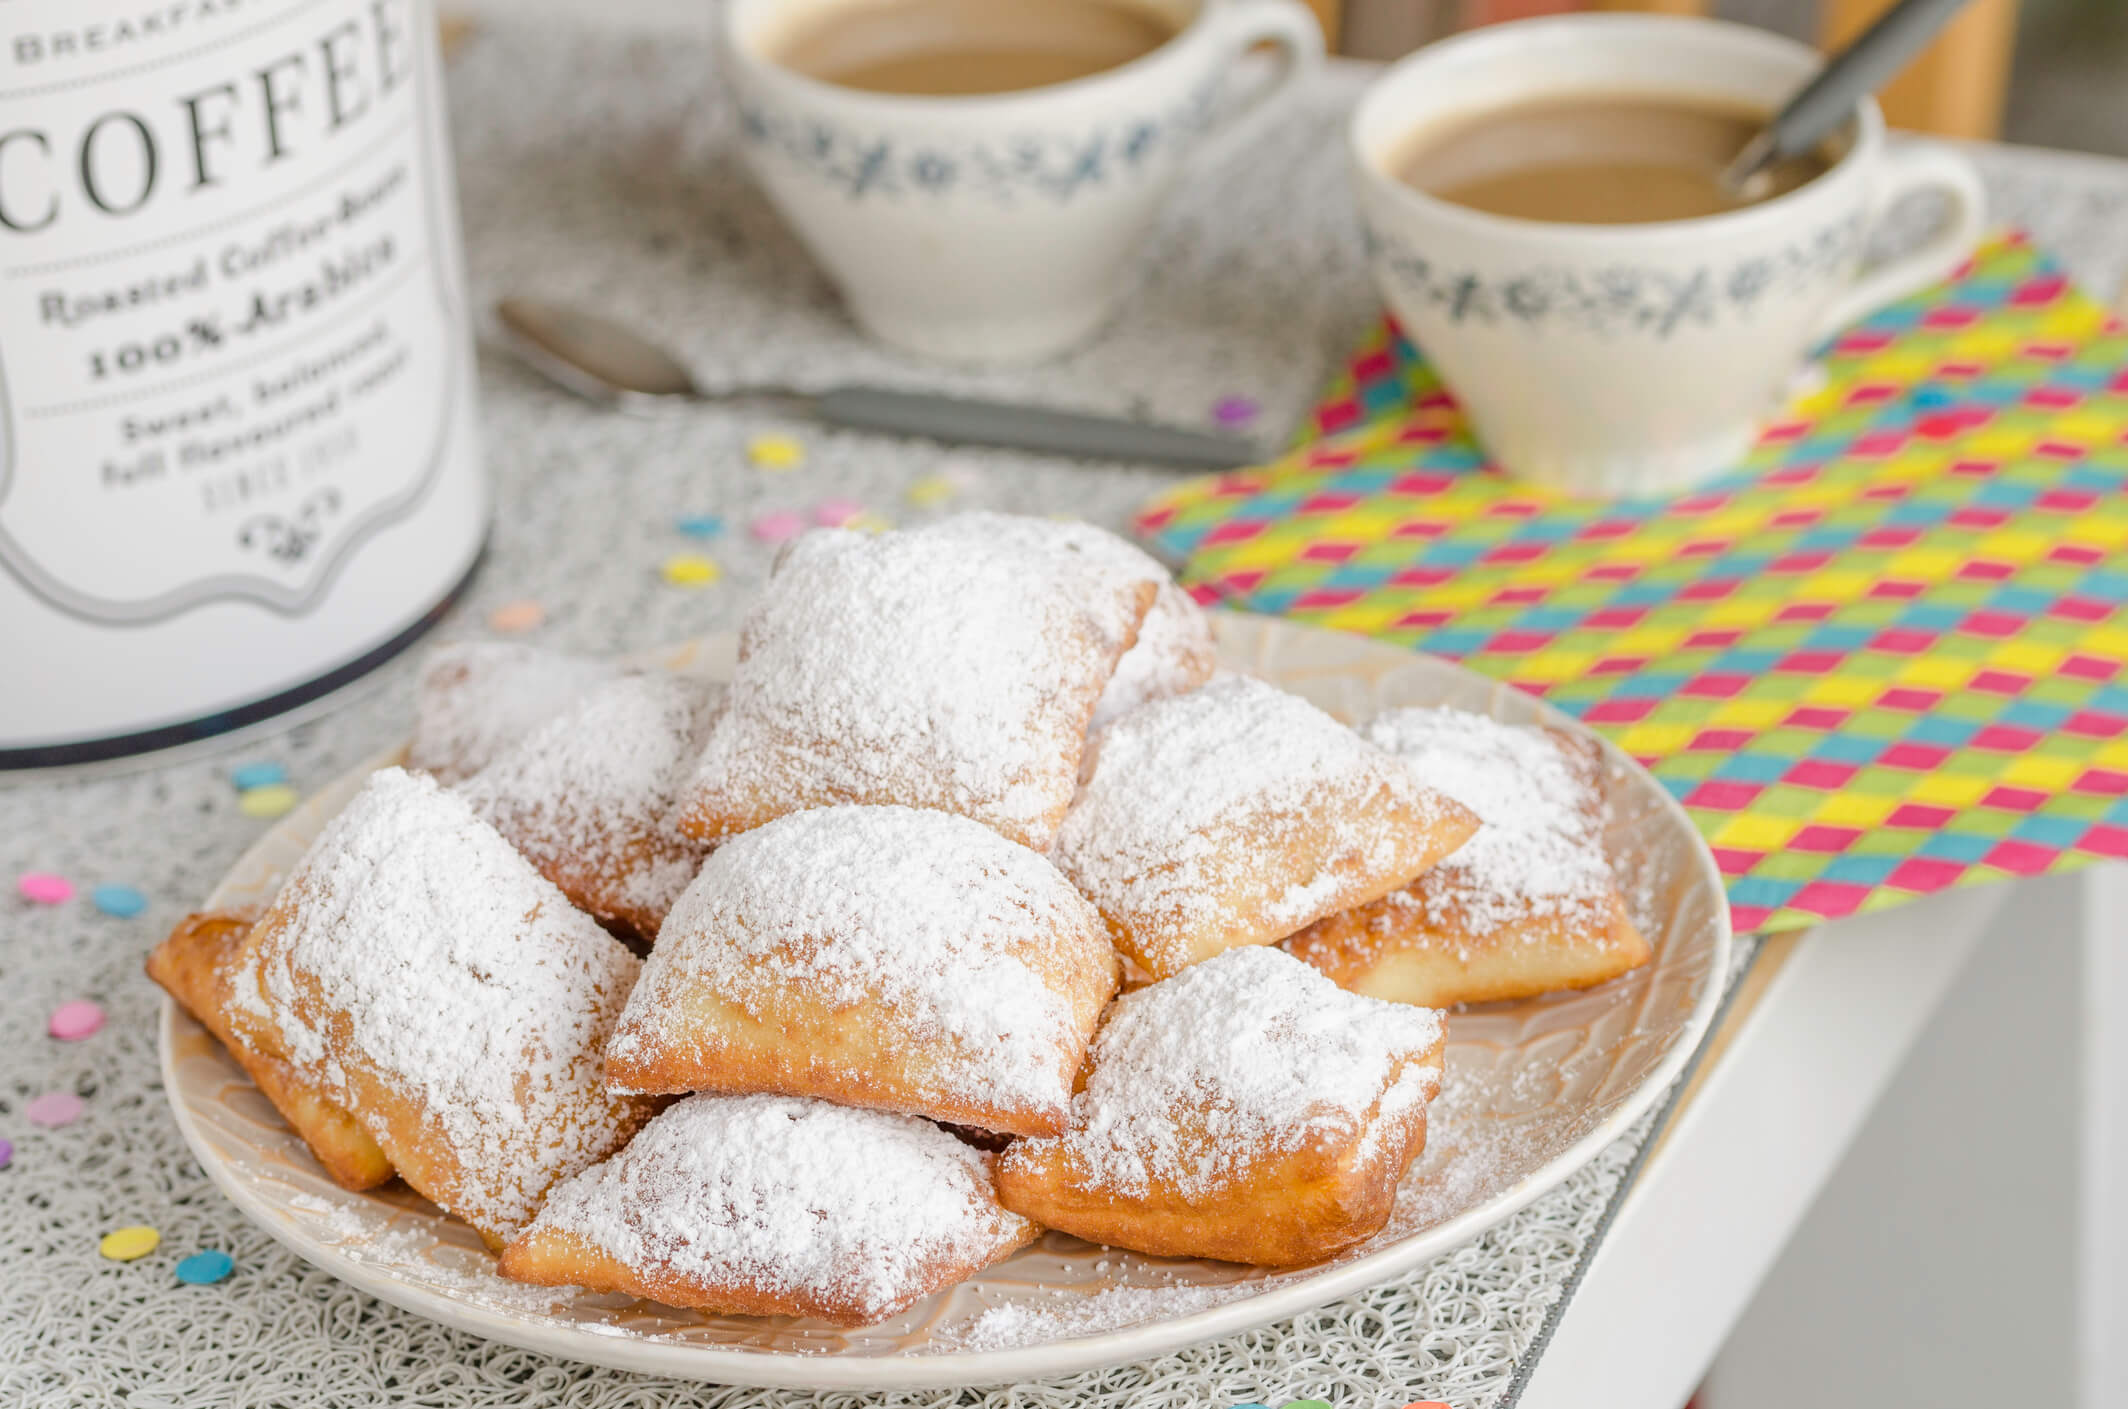 New Orleans beignets served for Mardi Gras